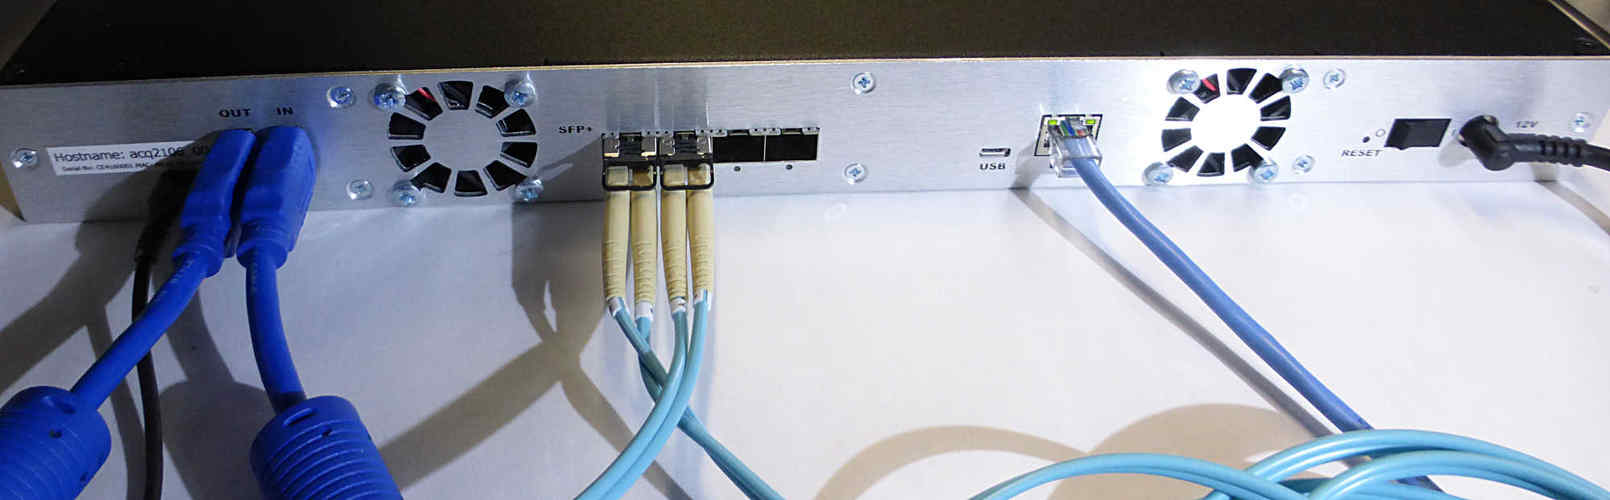 ACQ2106 rear panel showing 4 x SFP fiber-optic ports, SYNC cable and Ethernet.